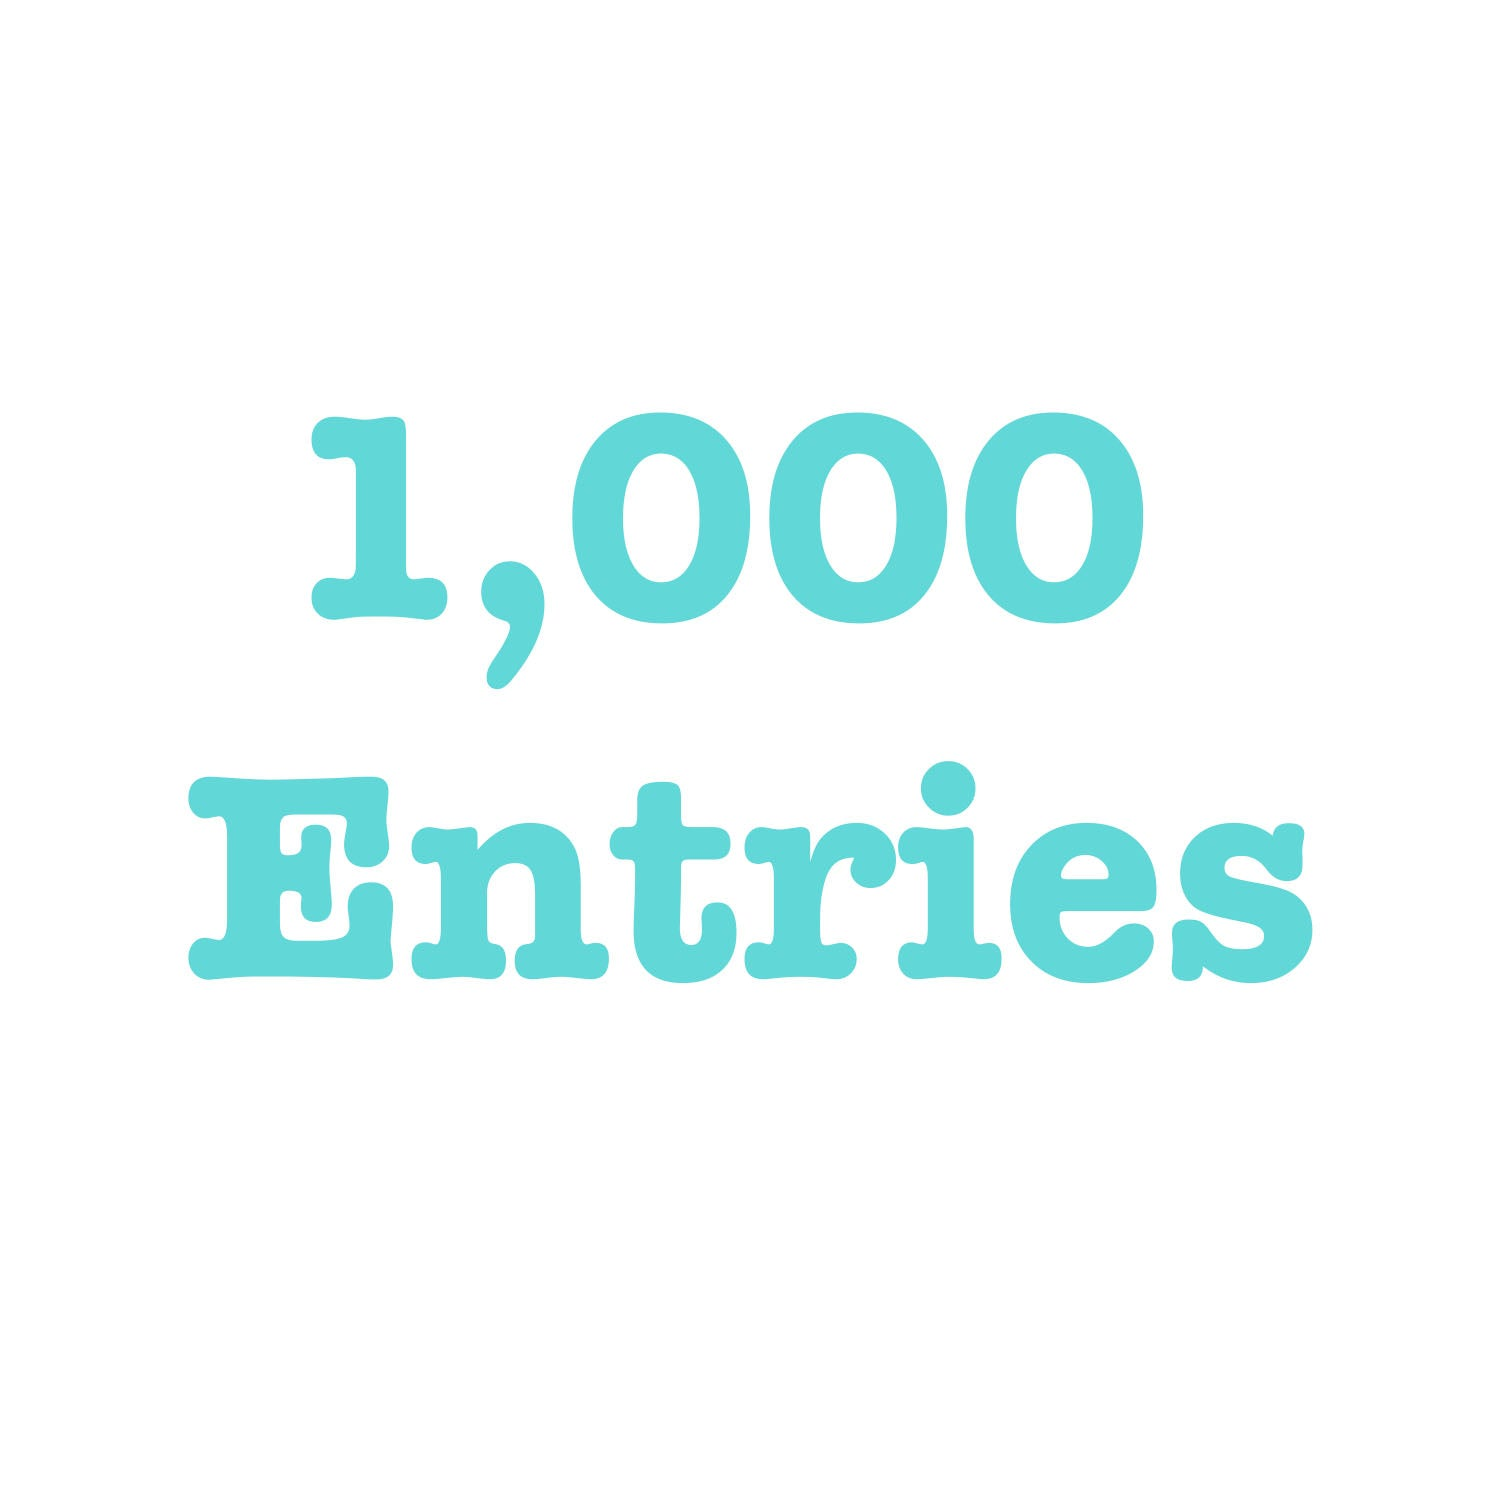 Donate To Get 1,000 Entries